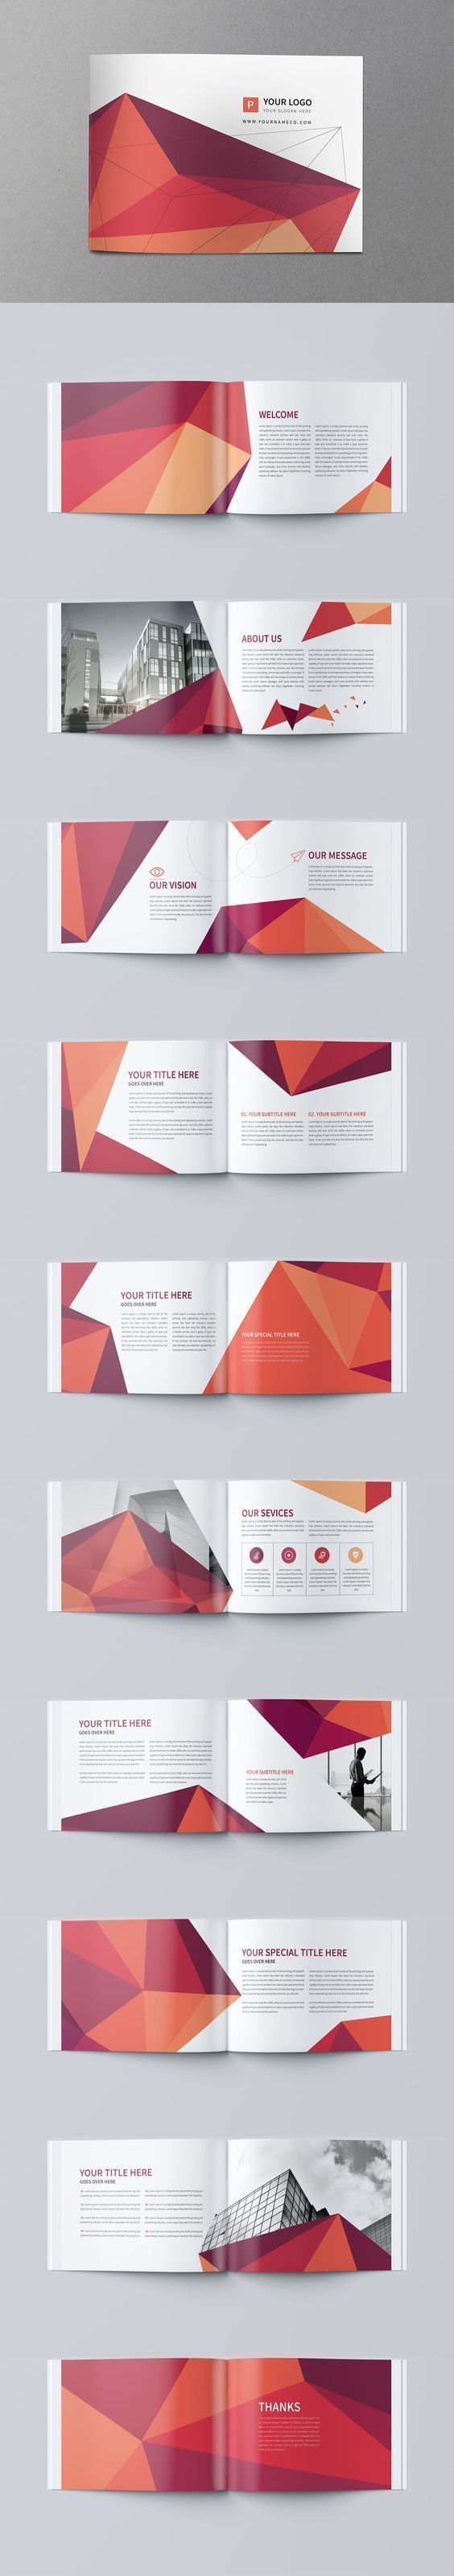 2534 Architecture Brochure Template – 43+ Free Psd, Pdf, Eps Throughout Architecture Brochure Templates Free Download